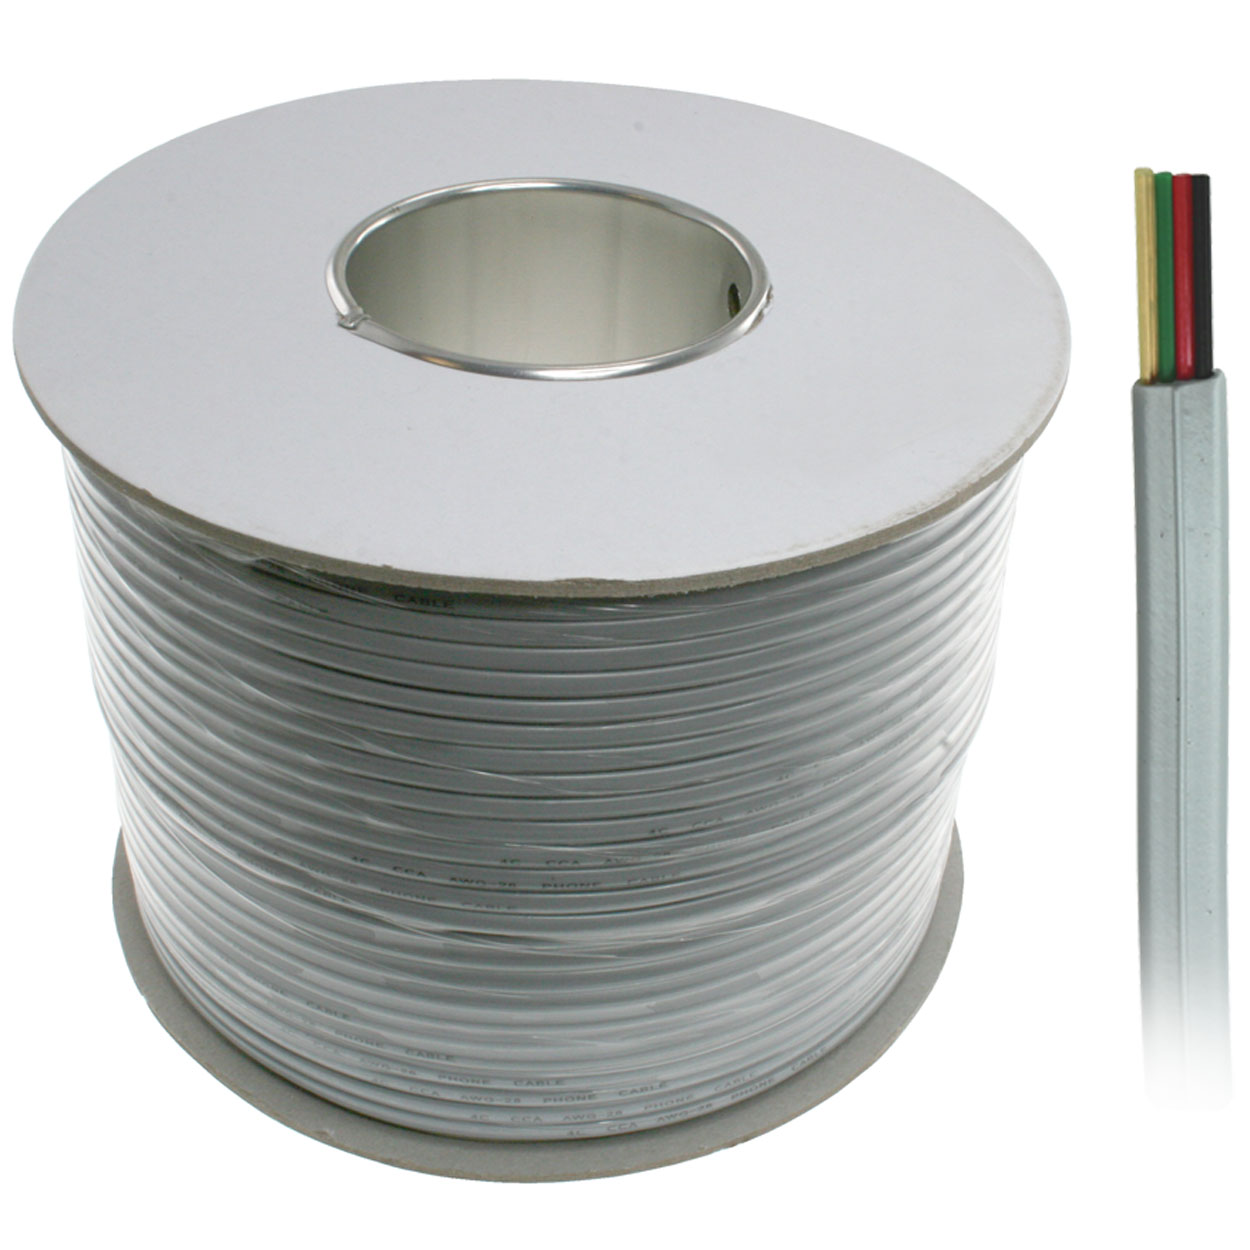 1000ft 4-Conductor Bulk Phone Cable, 26AWG, Silver Satin, UL Rated